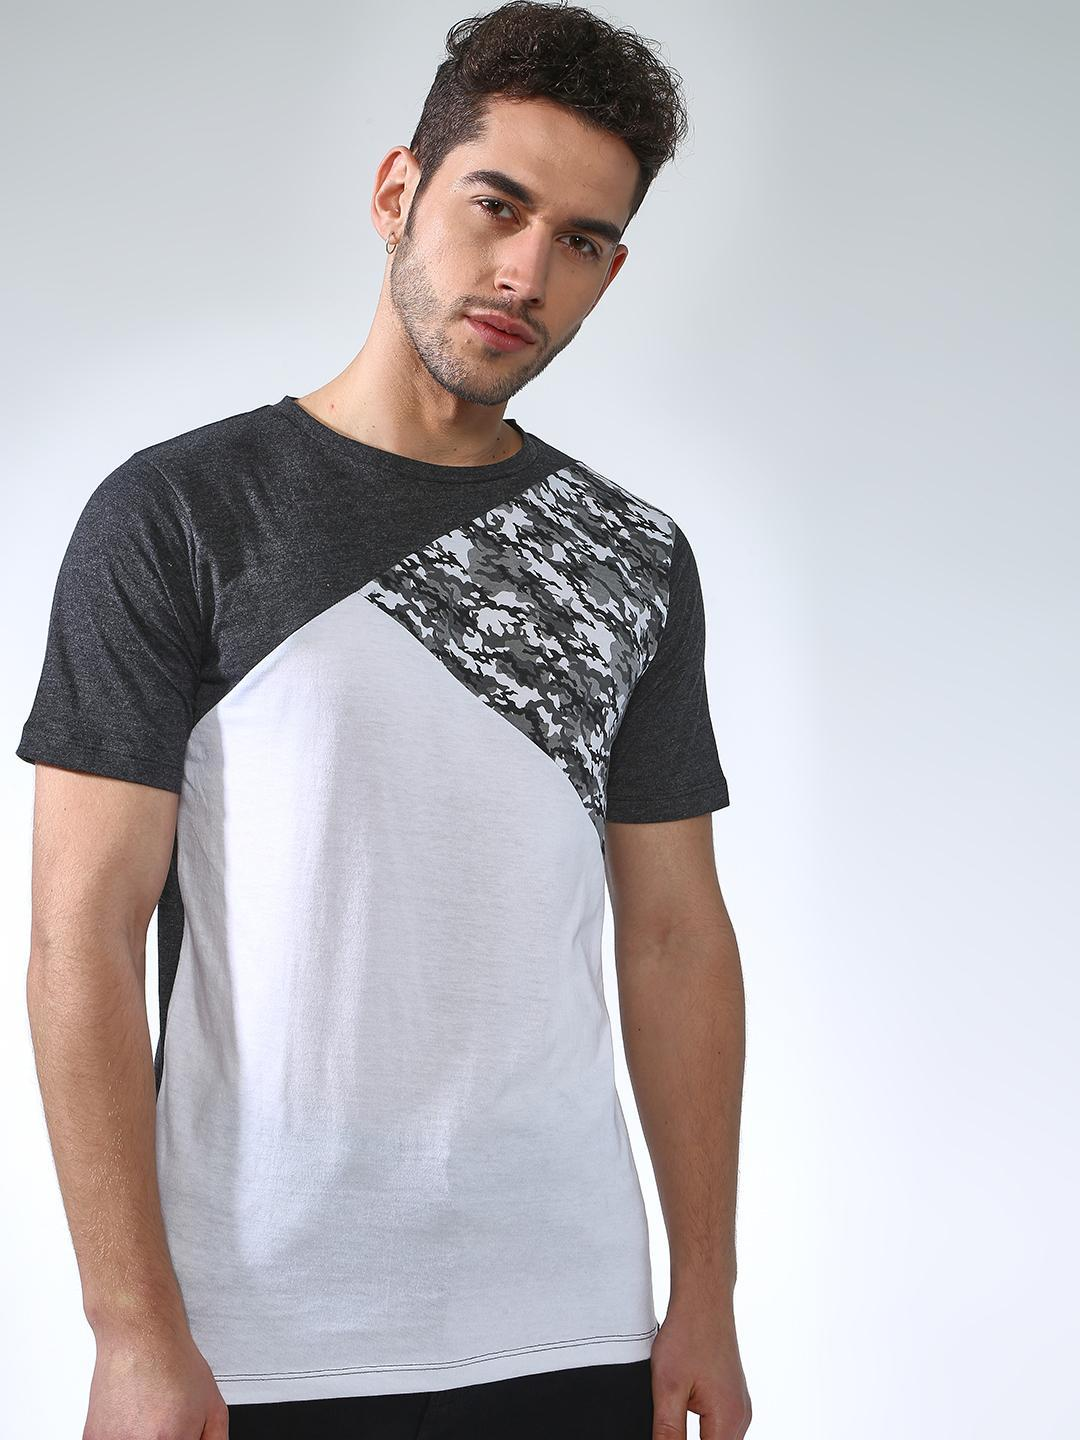 IMPACKT Multi Placement Print T-Shirt 1